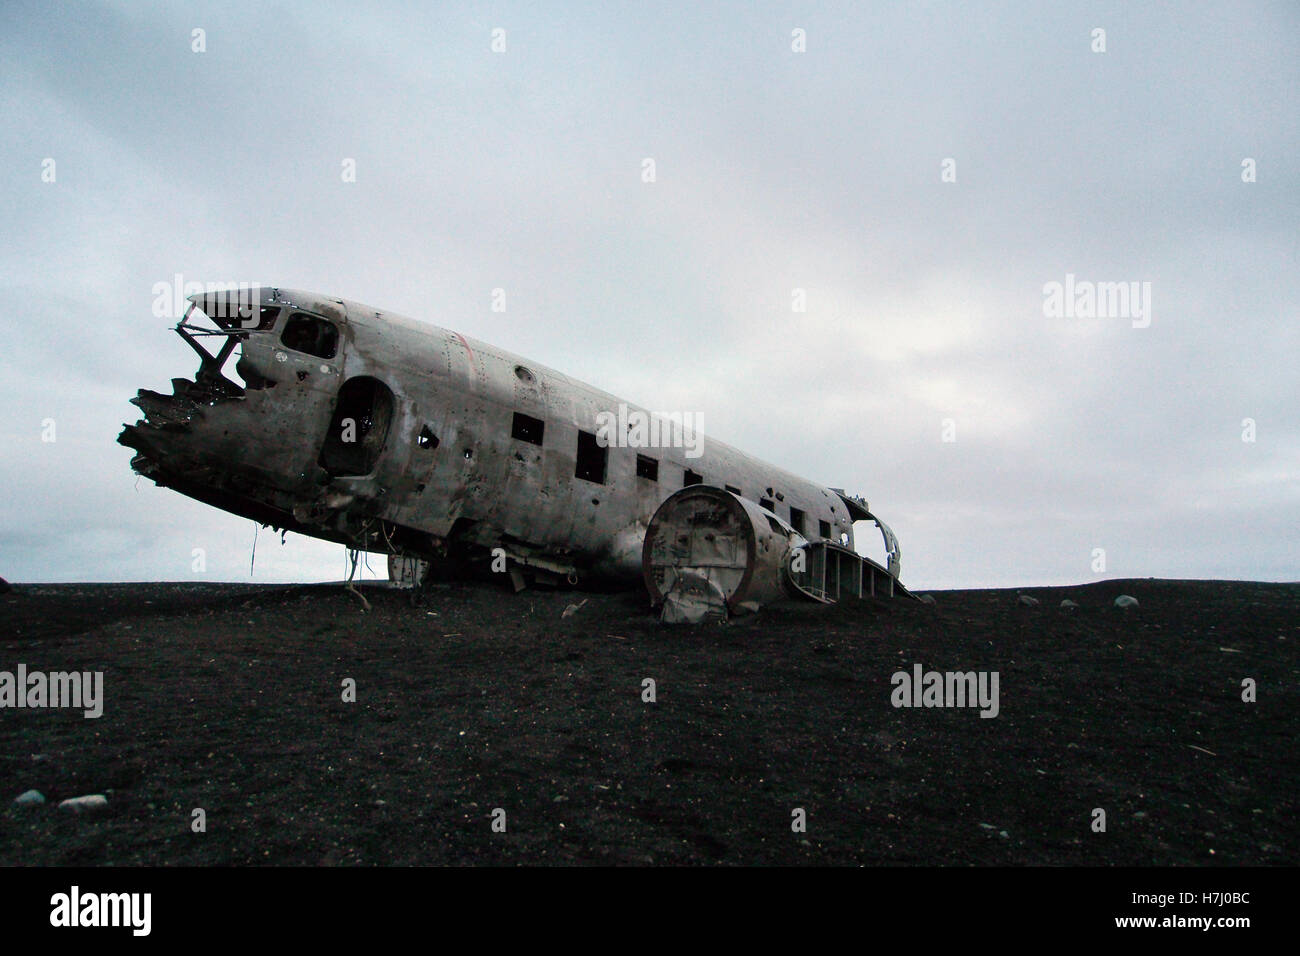 crashed DC10 plane on beach in Iceland - Stock Image